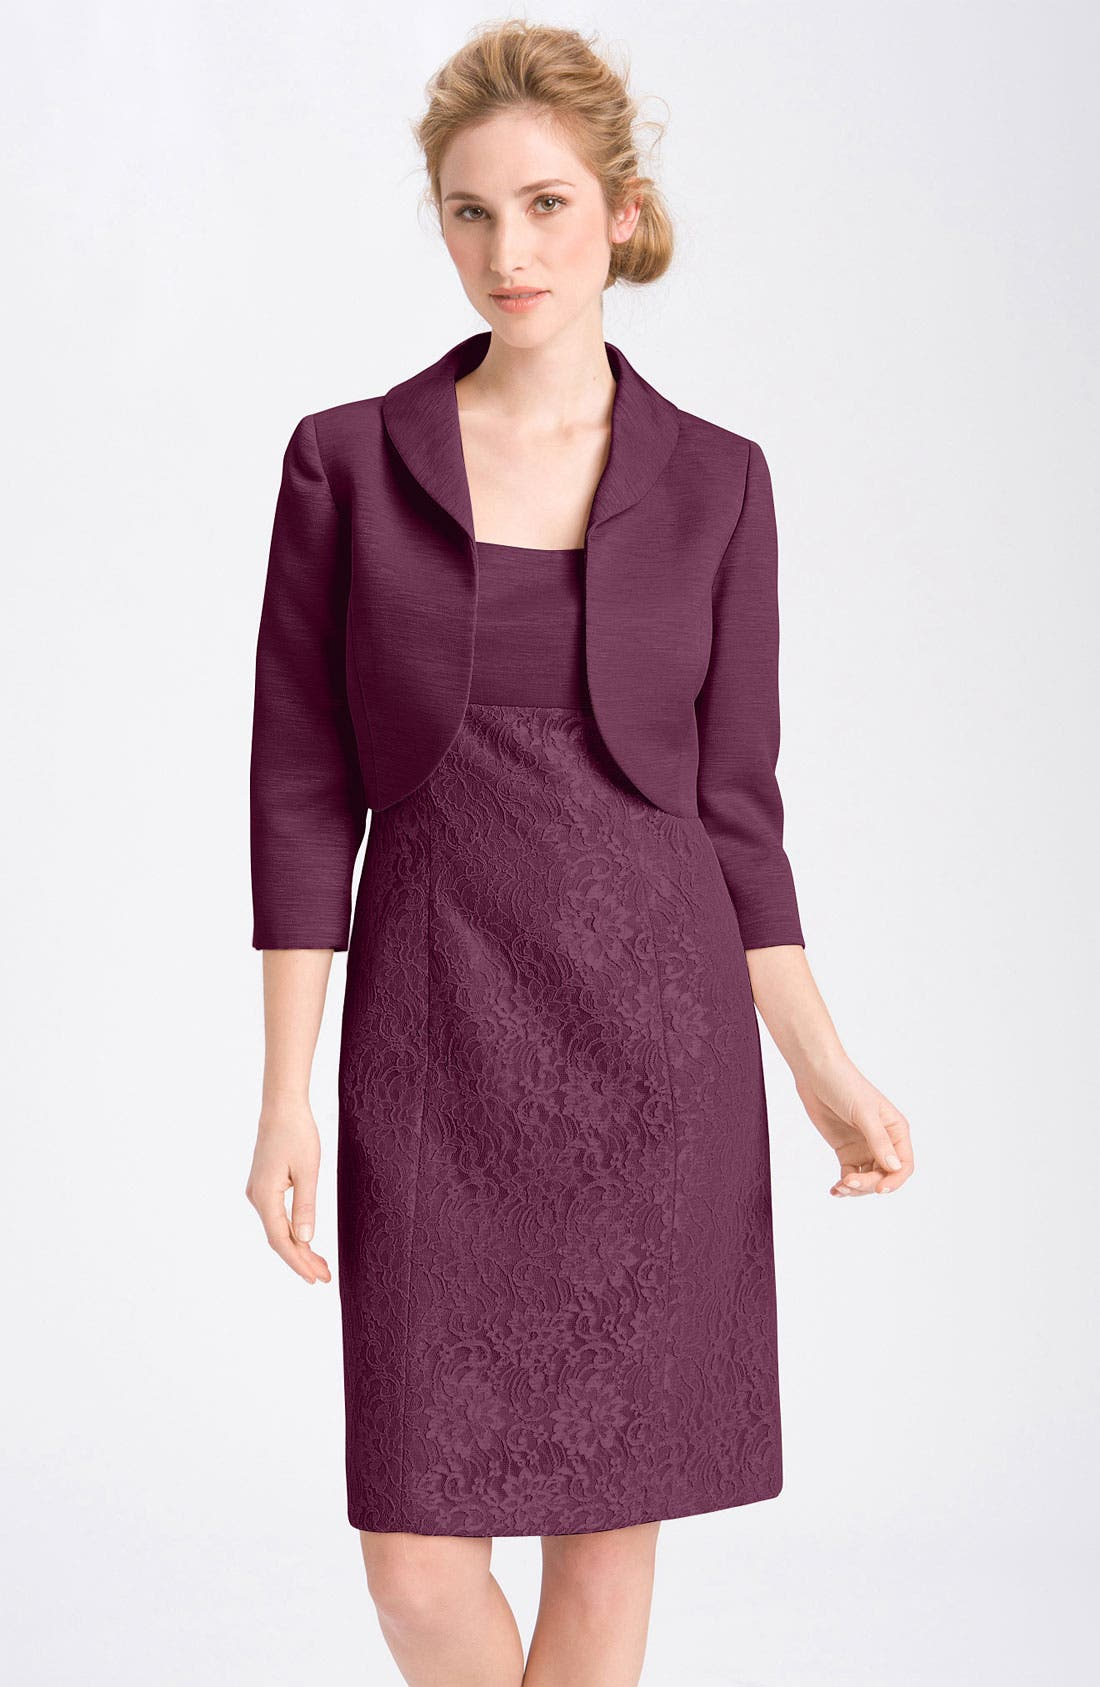 Main Image - Tahari Lace Sheath Dress & Jacket